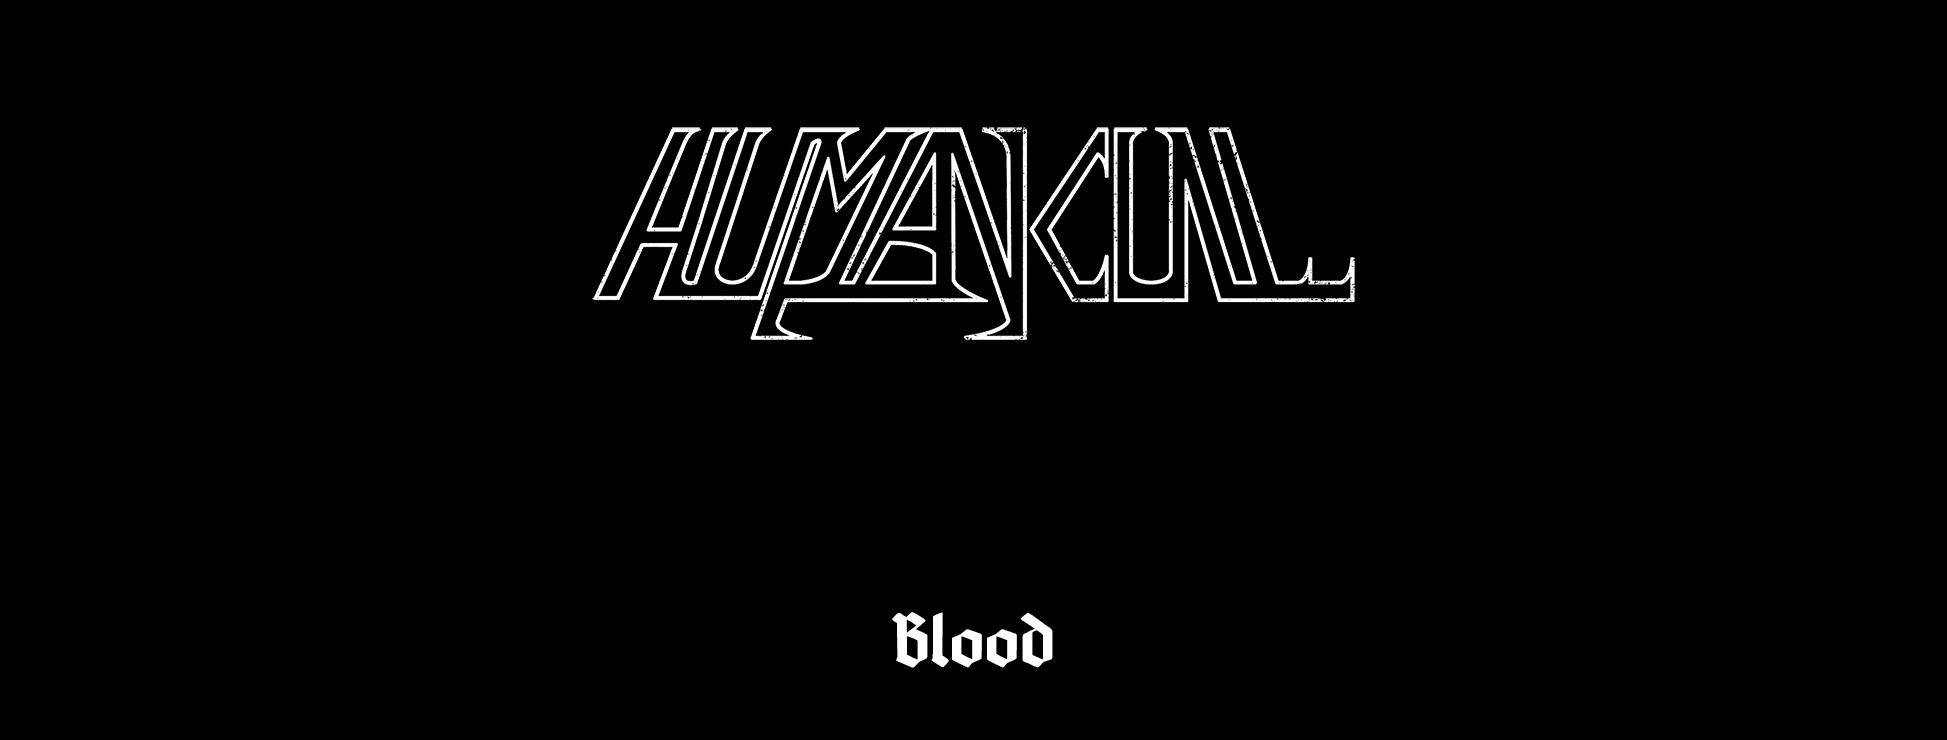 HUMAN_CULL_Revenant_Blood_Black